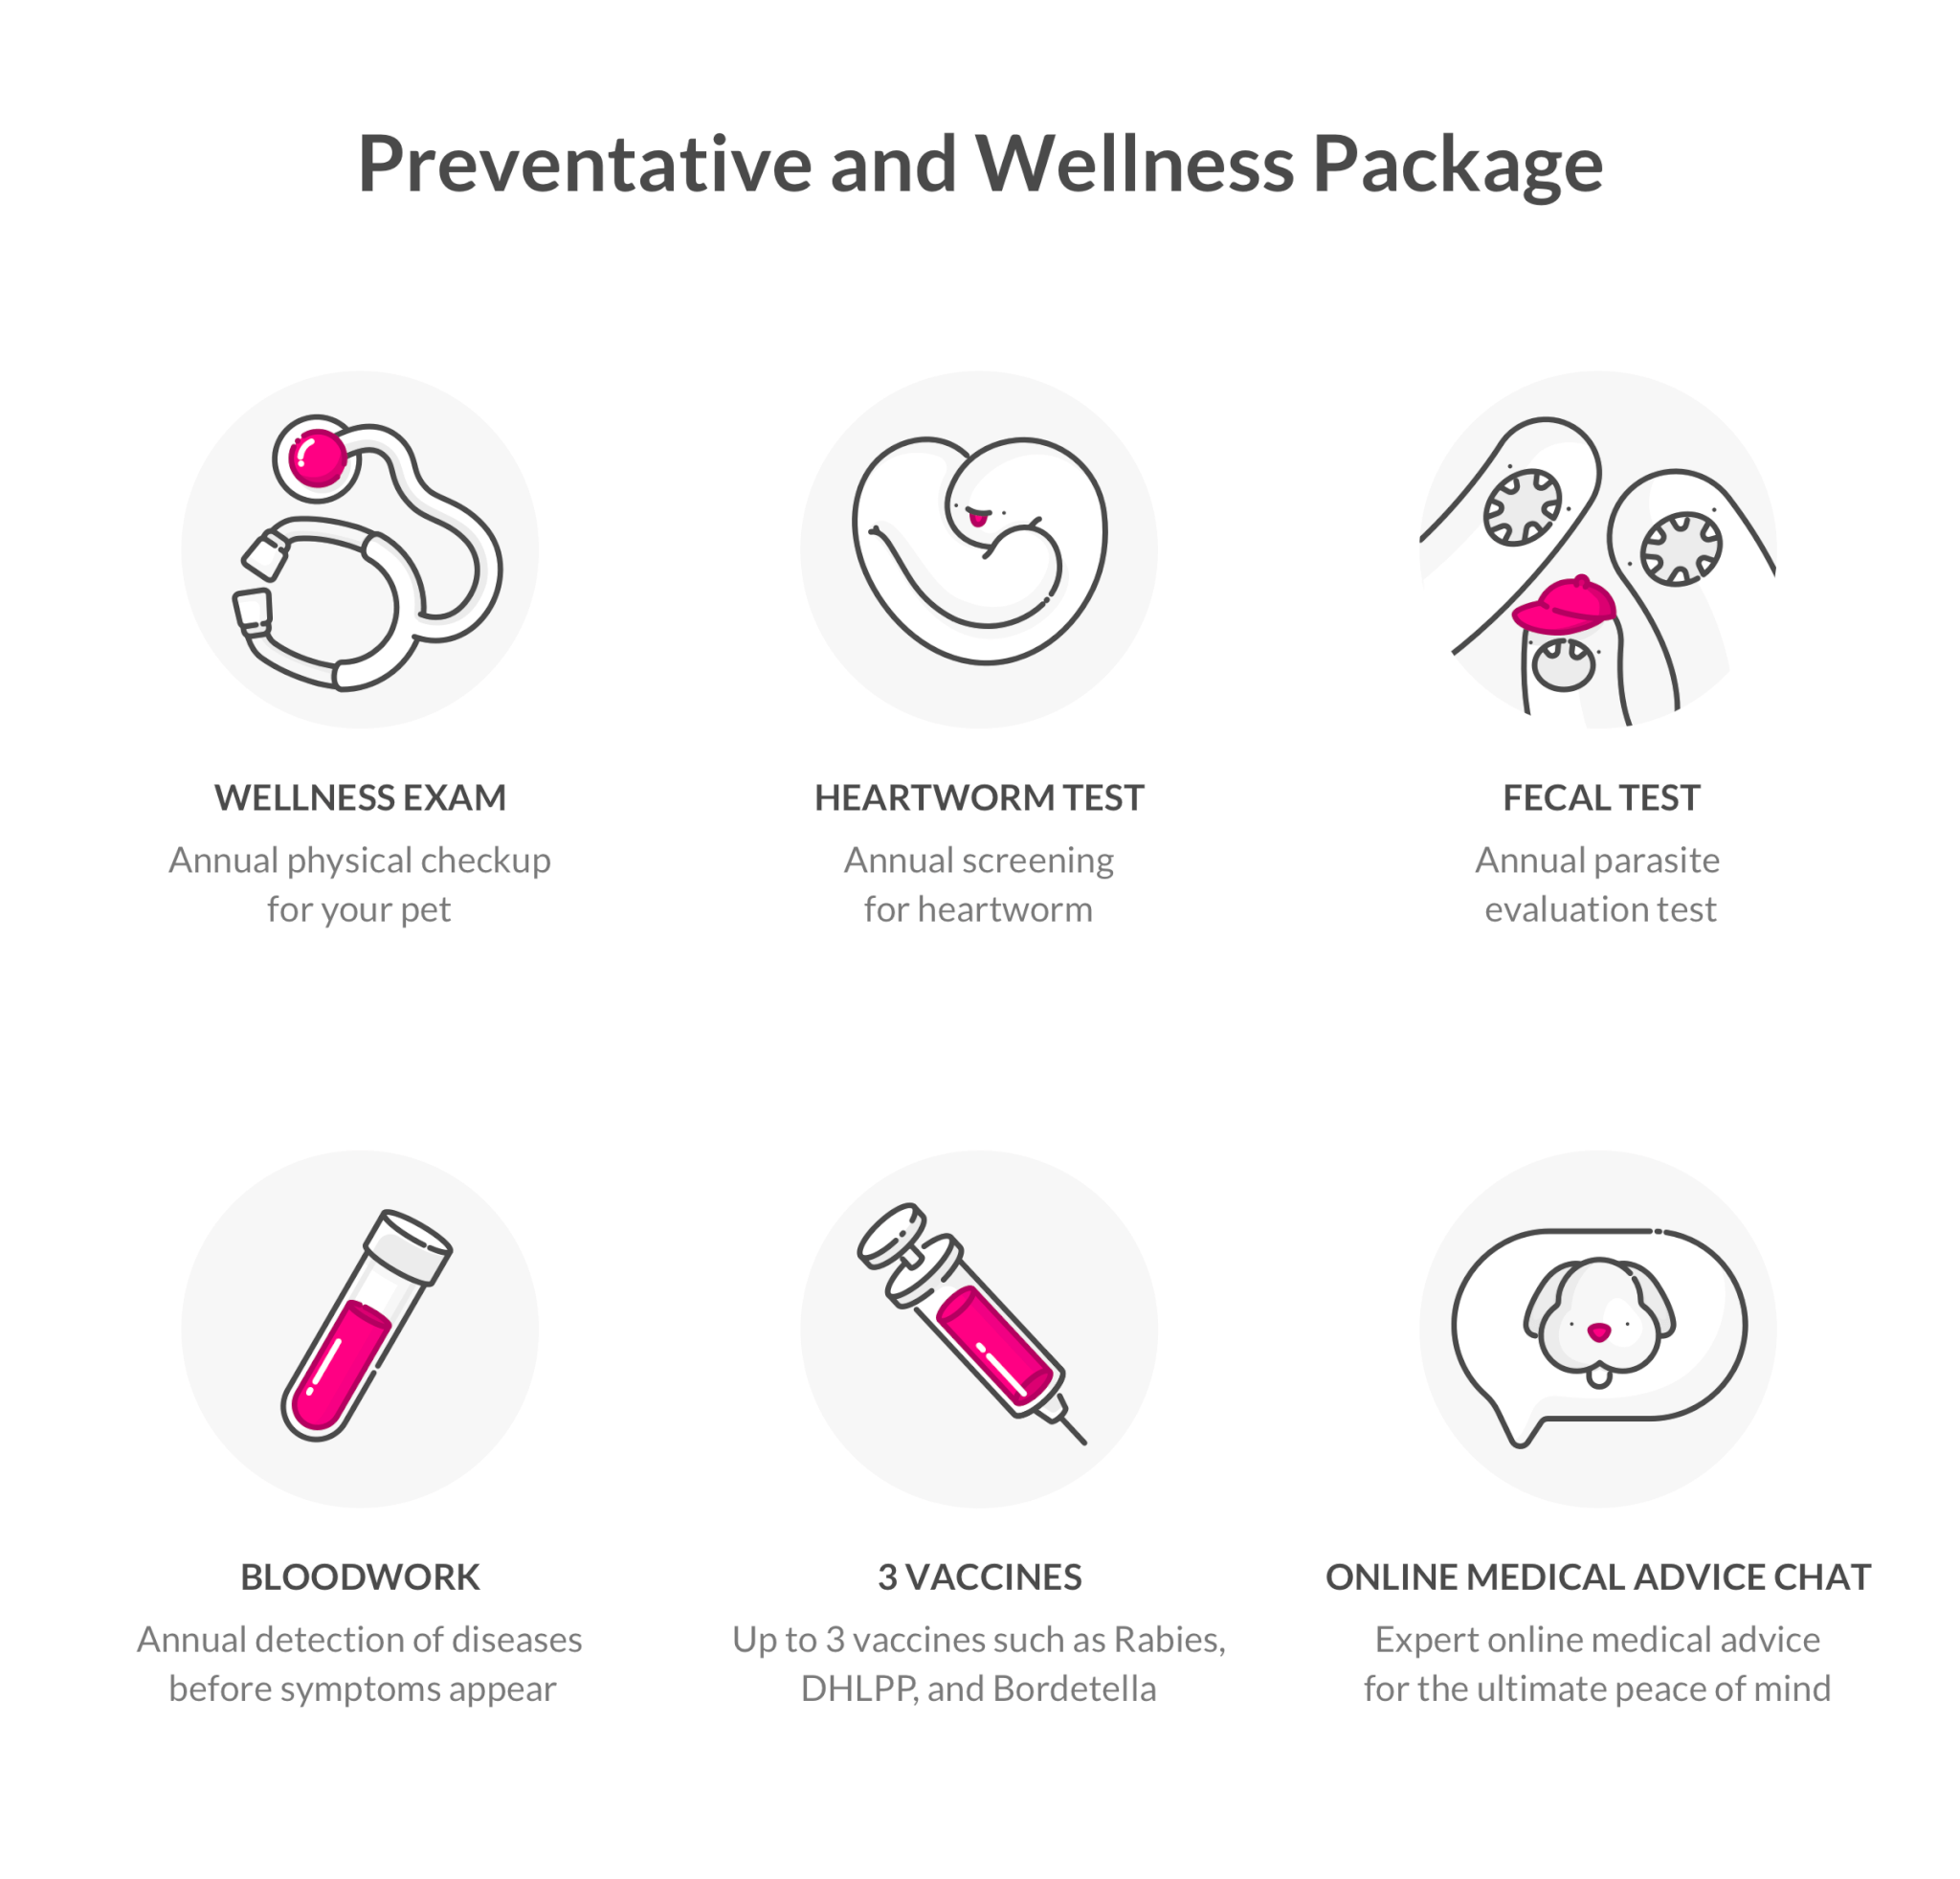 Preventative and Wellness Package